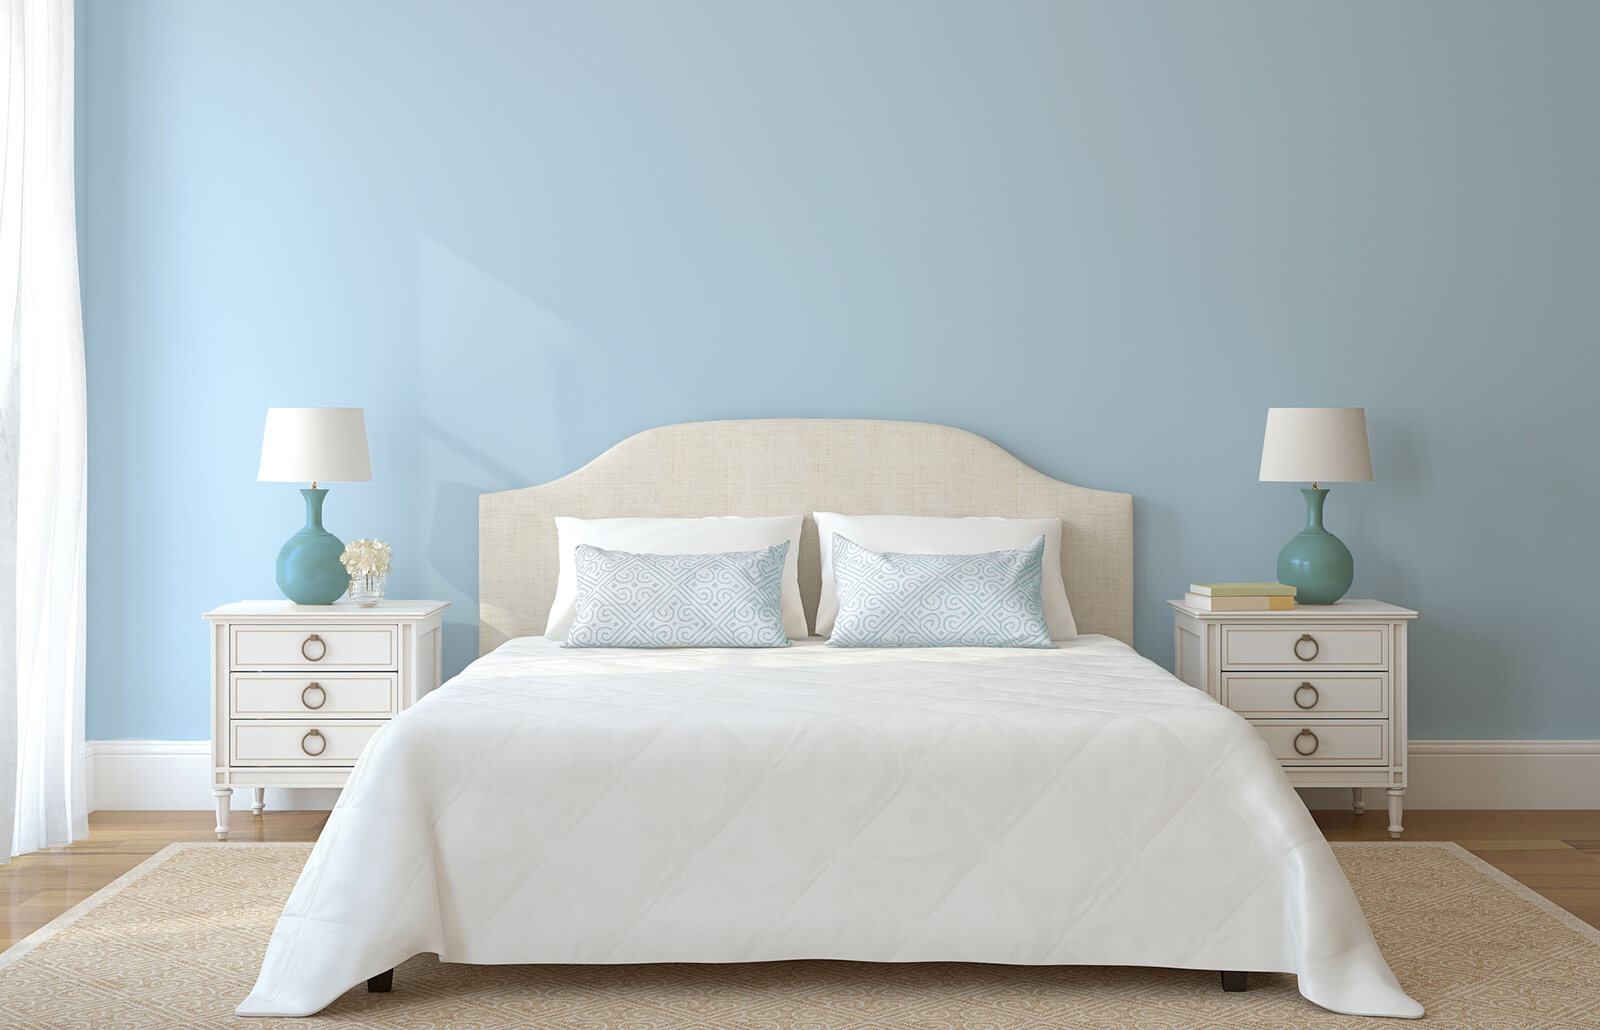 Use Feng Shui For Welcoming Guest Bedrooms Lovetoknow